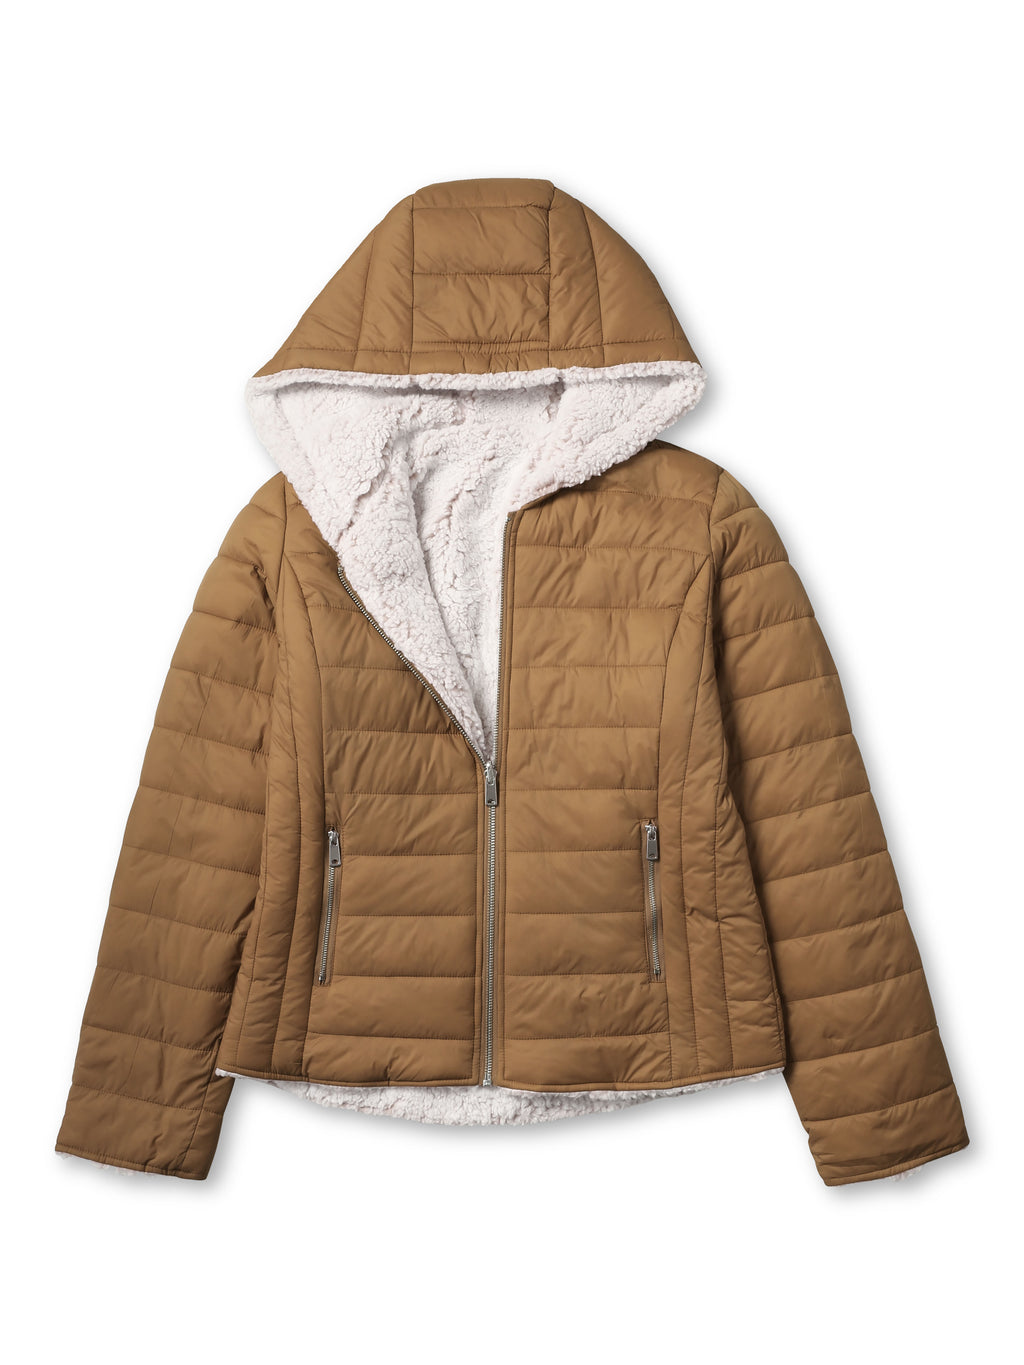 ladies_reversible_jacket_hood_fleece_white_puffer_with_fur_black_collection_water_resistance_off_white_synthetic_alternative_down_sherpa_lined_lightweight_military_parka_ski_coat_nuage_quilted_outerwear_warm_winter_fall_plush_padding_petite_mujer_chaqueta_outdoor_hike_performance_camping_commuter_short_midlength_Camel